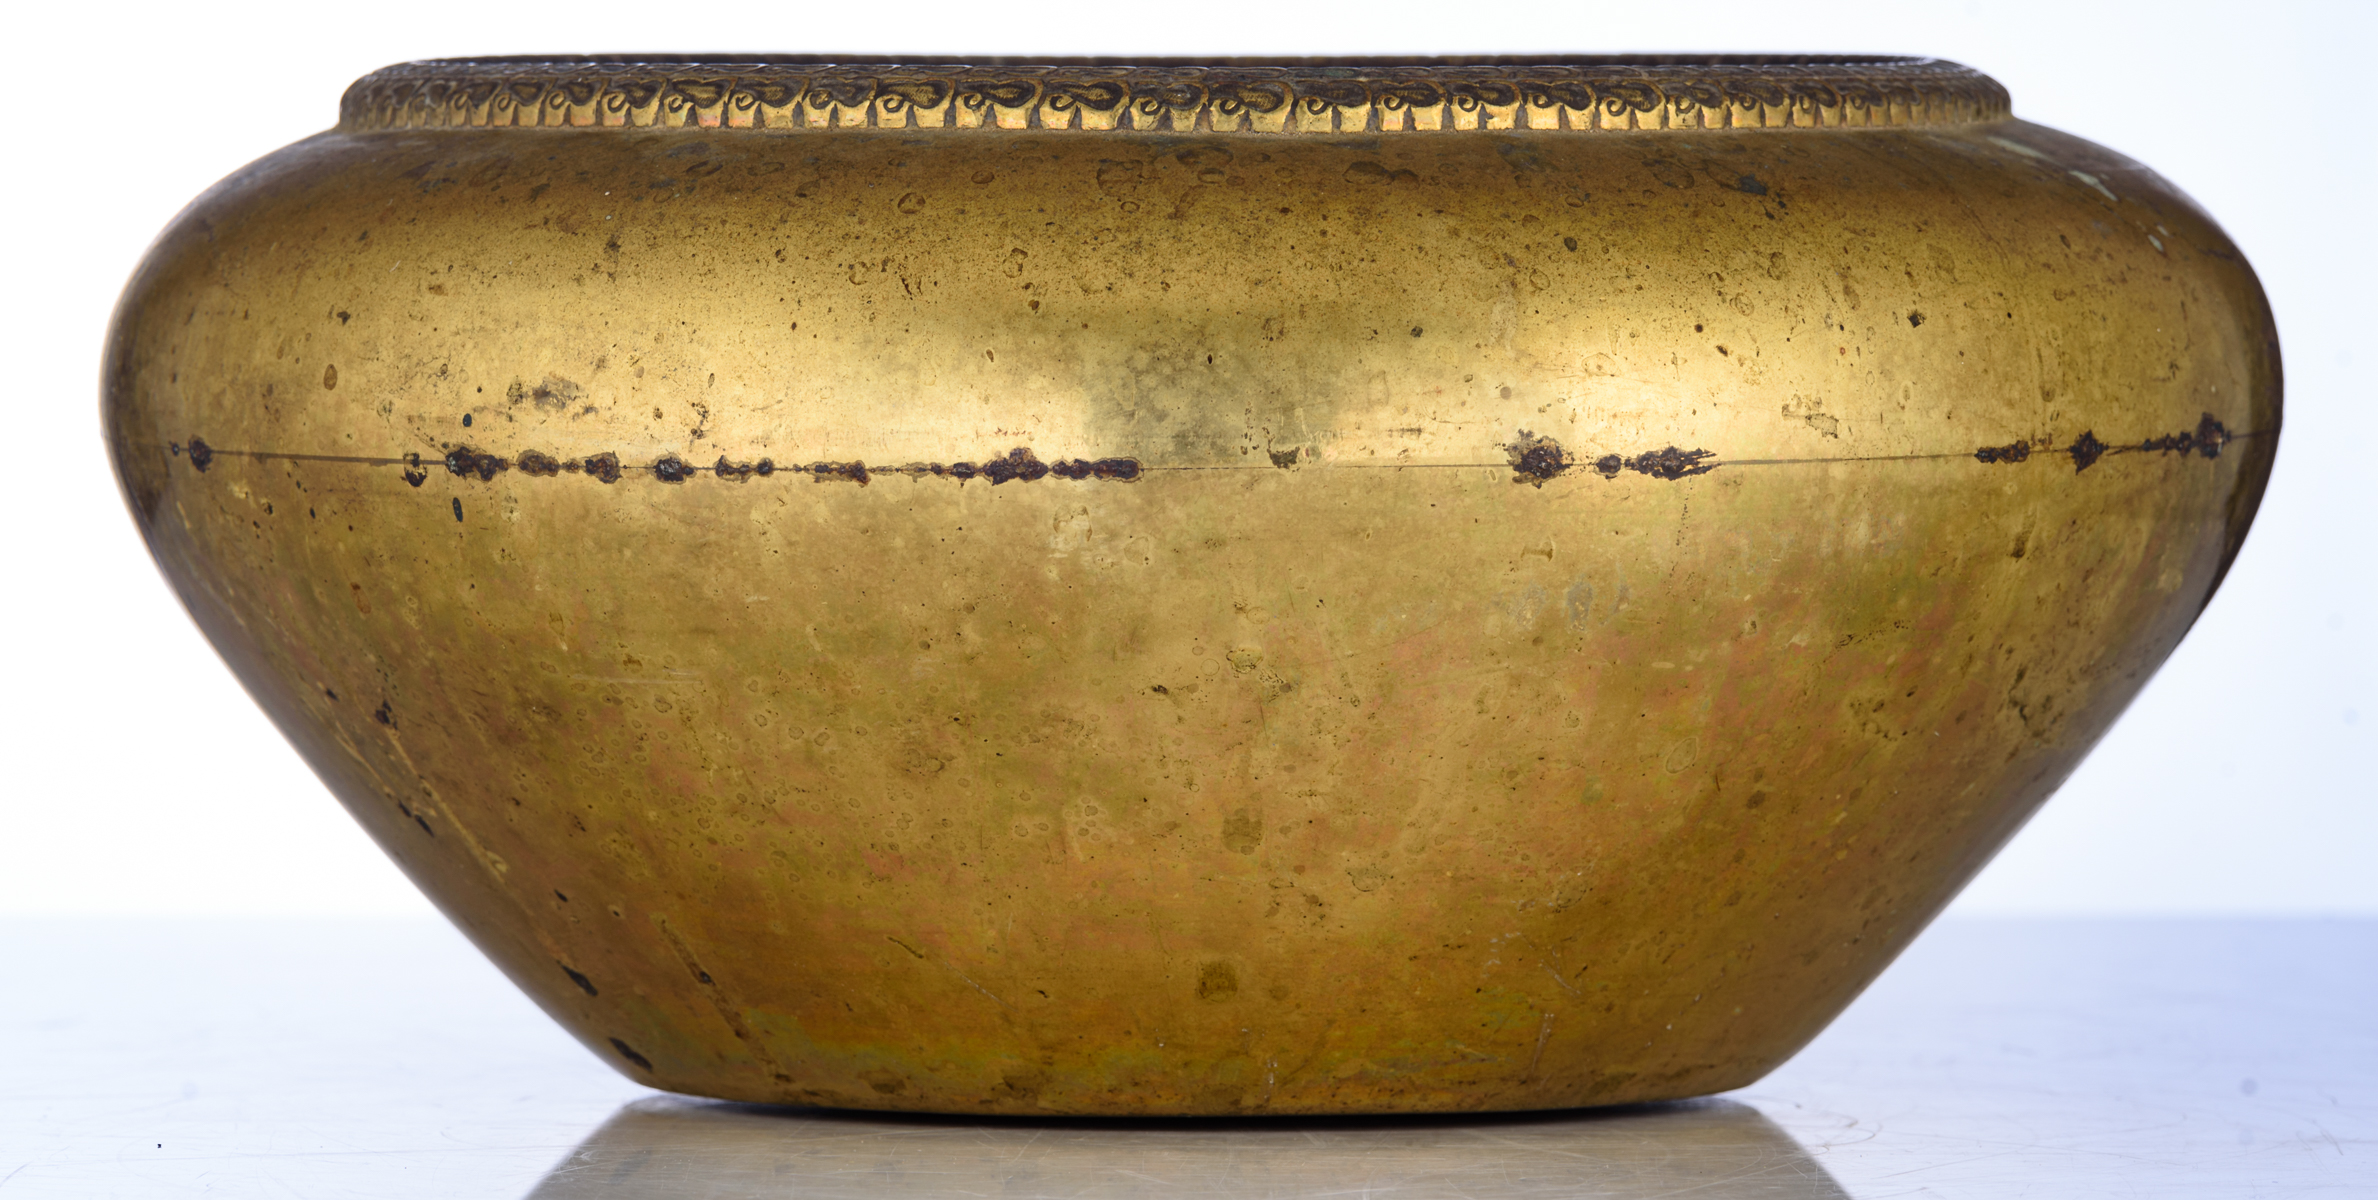 Lot 10 - A Chinese gilt bronze incense burner, with a Xuande mark encircled by dragons, H 15,5 - ø 31 cm